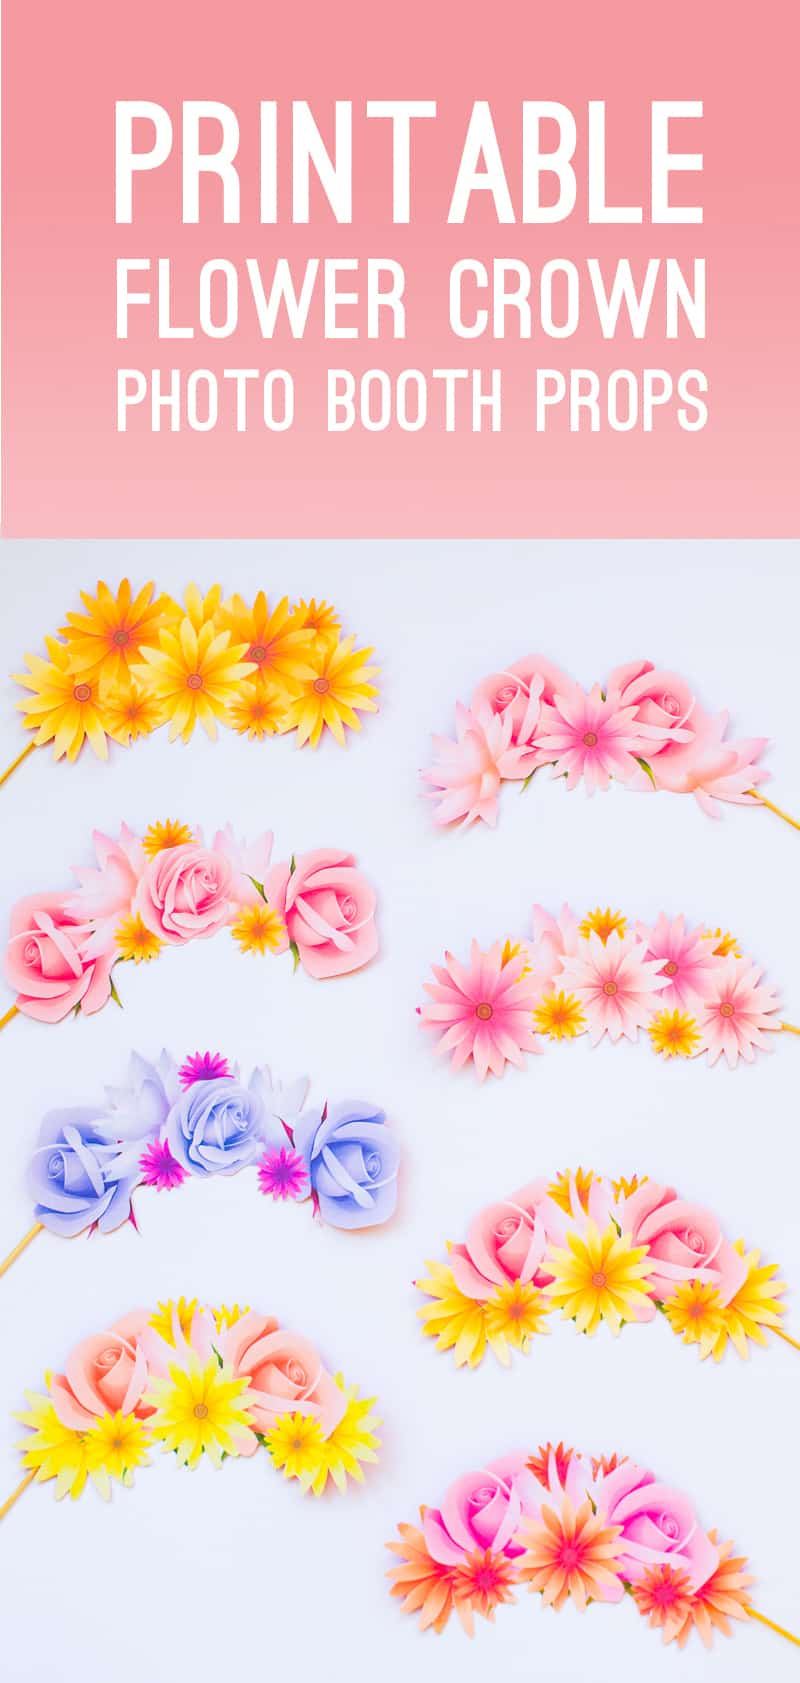 Photo Booth Props Printable Flower Crowns Hen Party Bachelorette Party Bridal Shower Download Floral-17